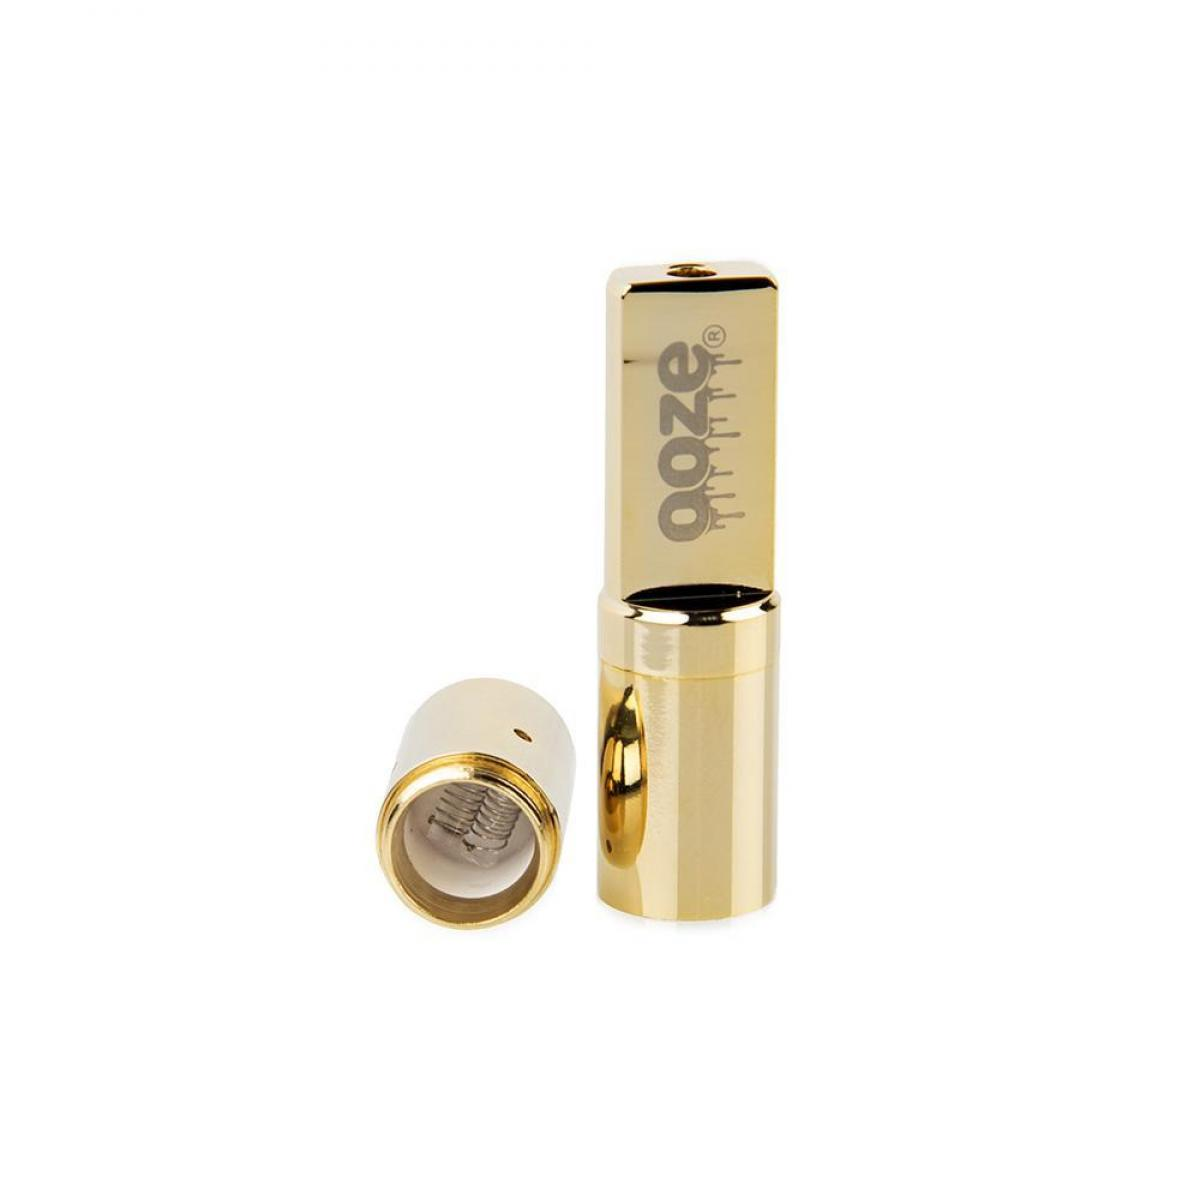 Duplex Wax Atomizer Coil - GOLD